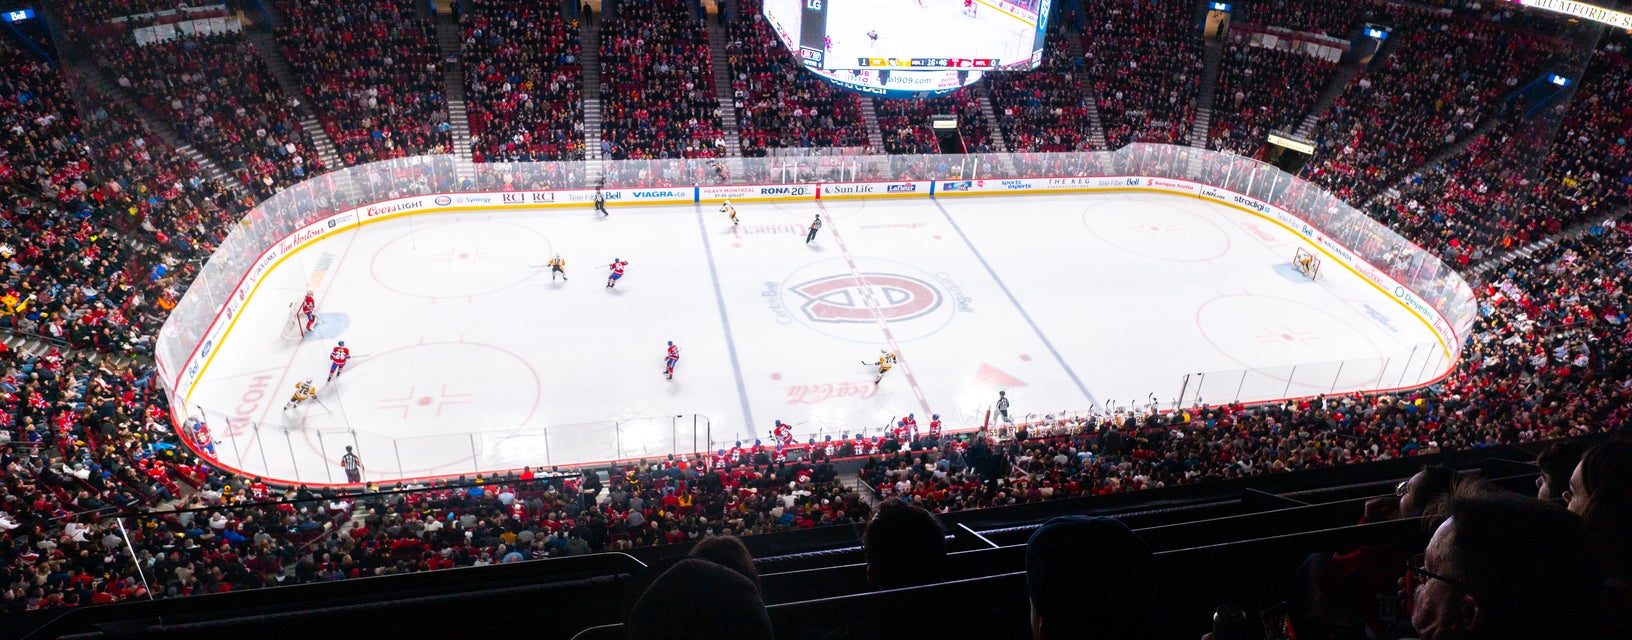 Seat view from Blue Center